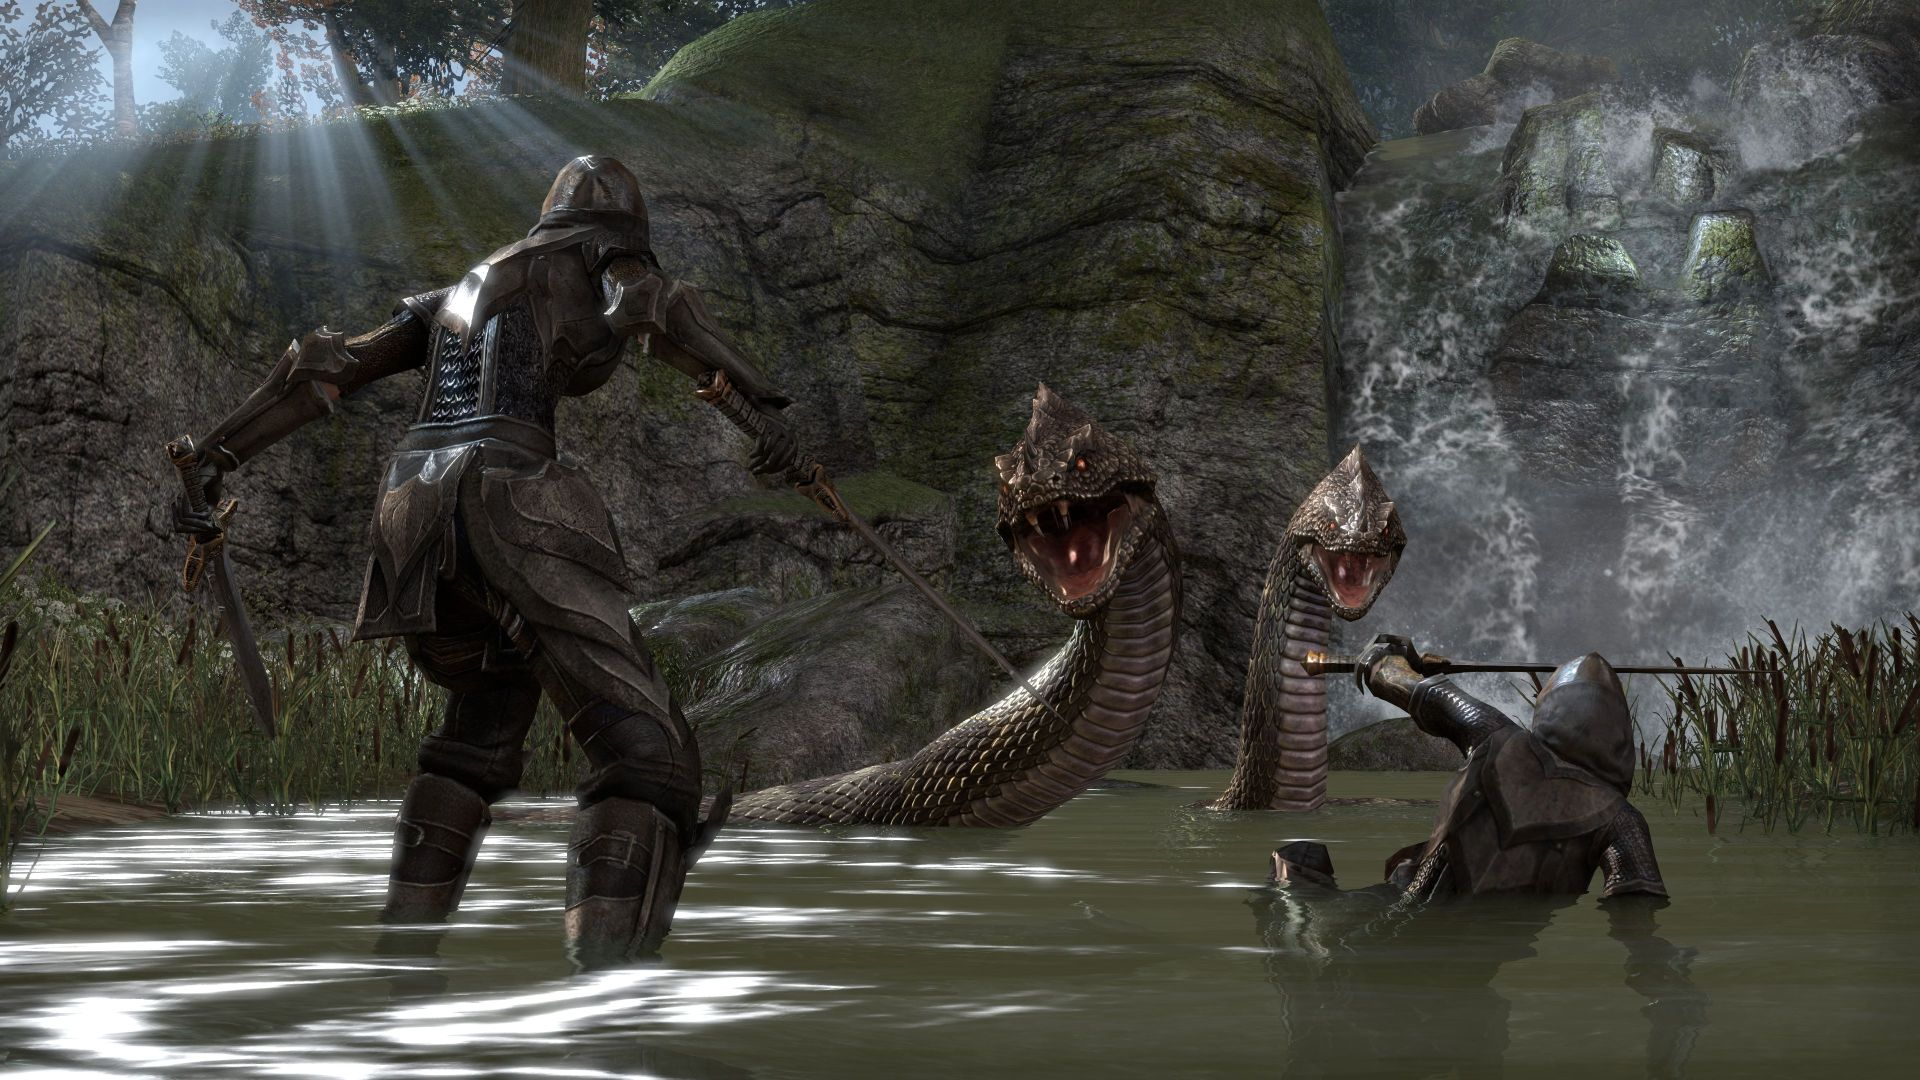 Play ESO This Weekend And You Could Win One Million Dollar